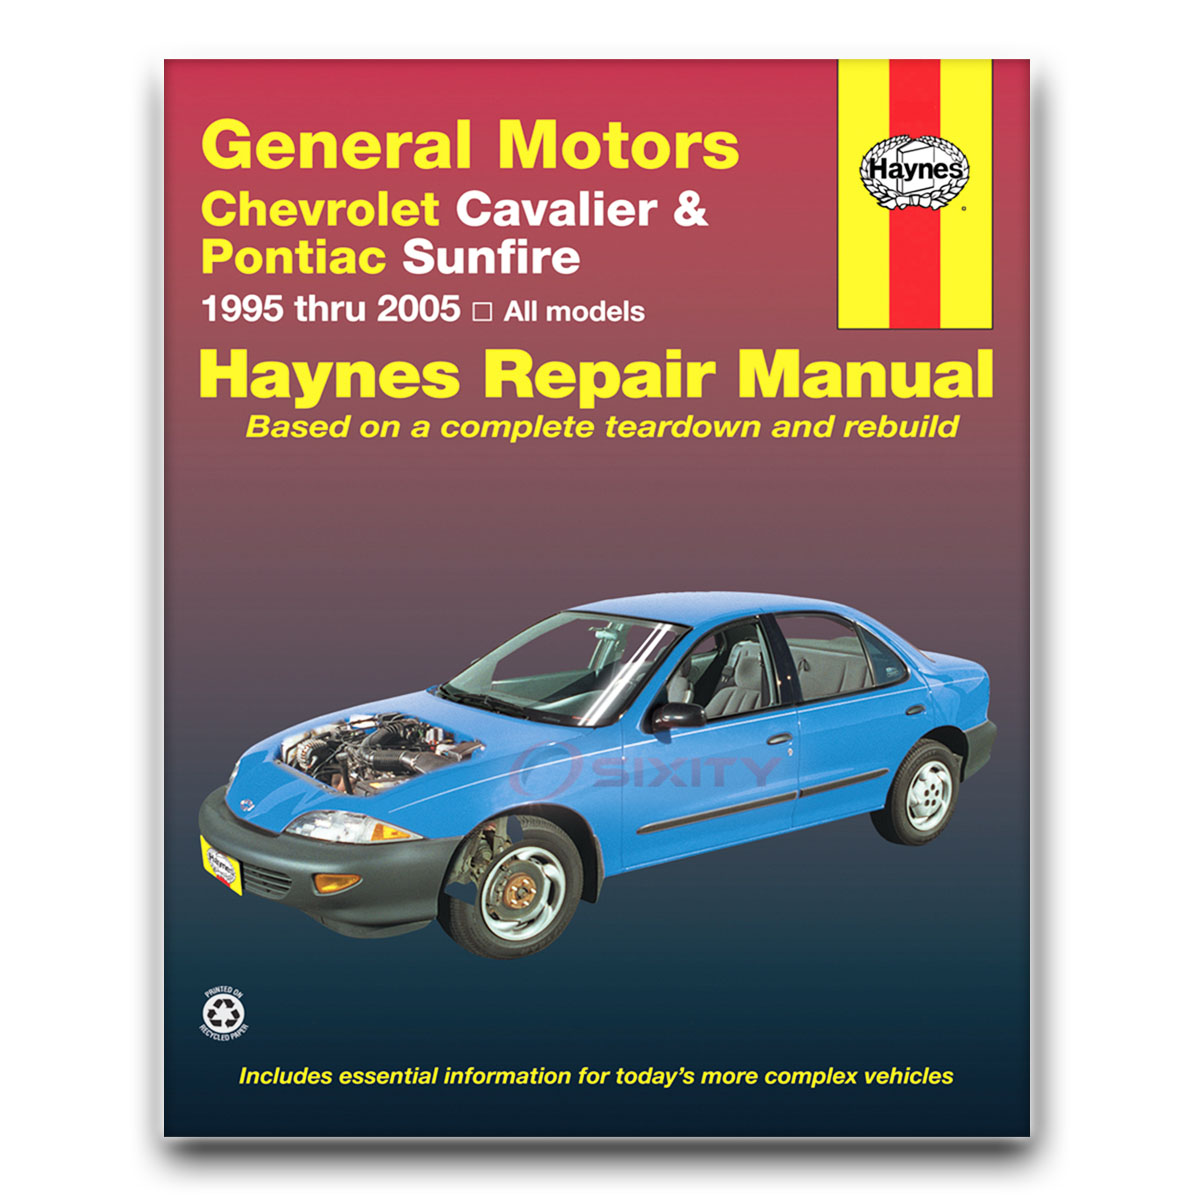 Haynes Repair Manual 38016 for GM Chevrolet Cavalier Pontiac Sunfire 95-05  ov